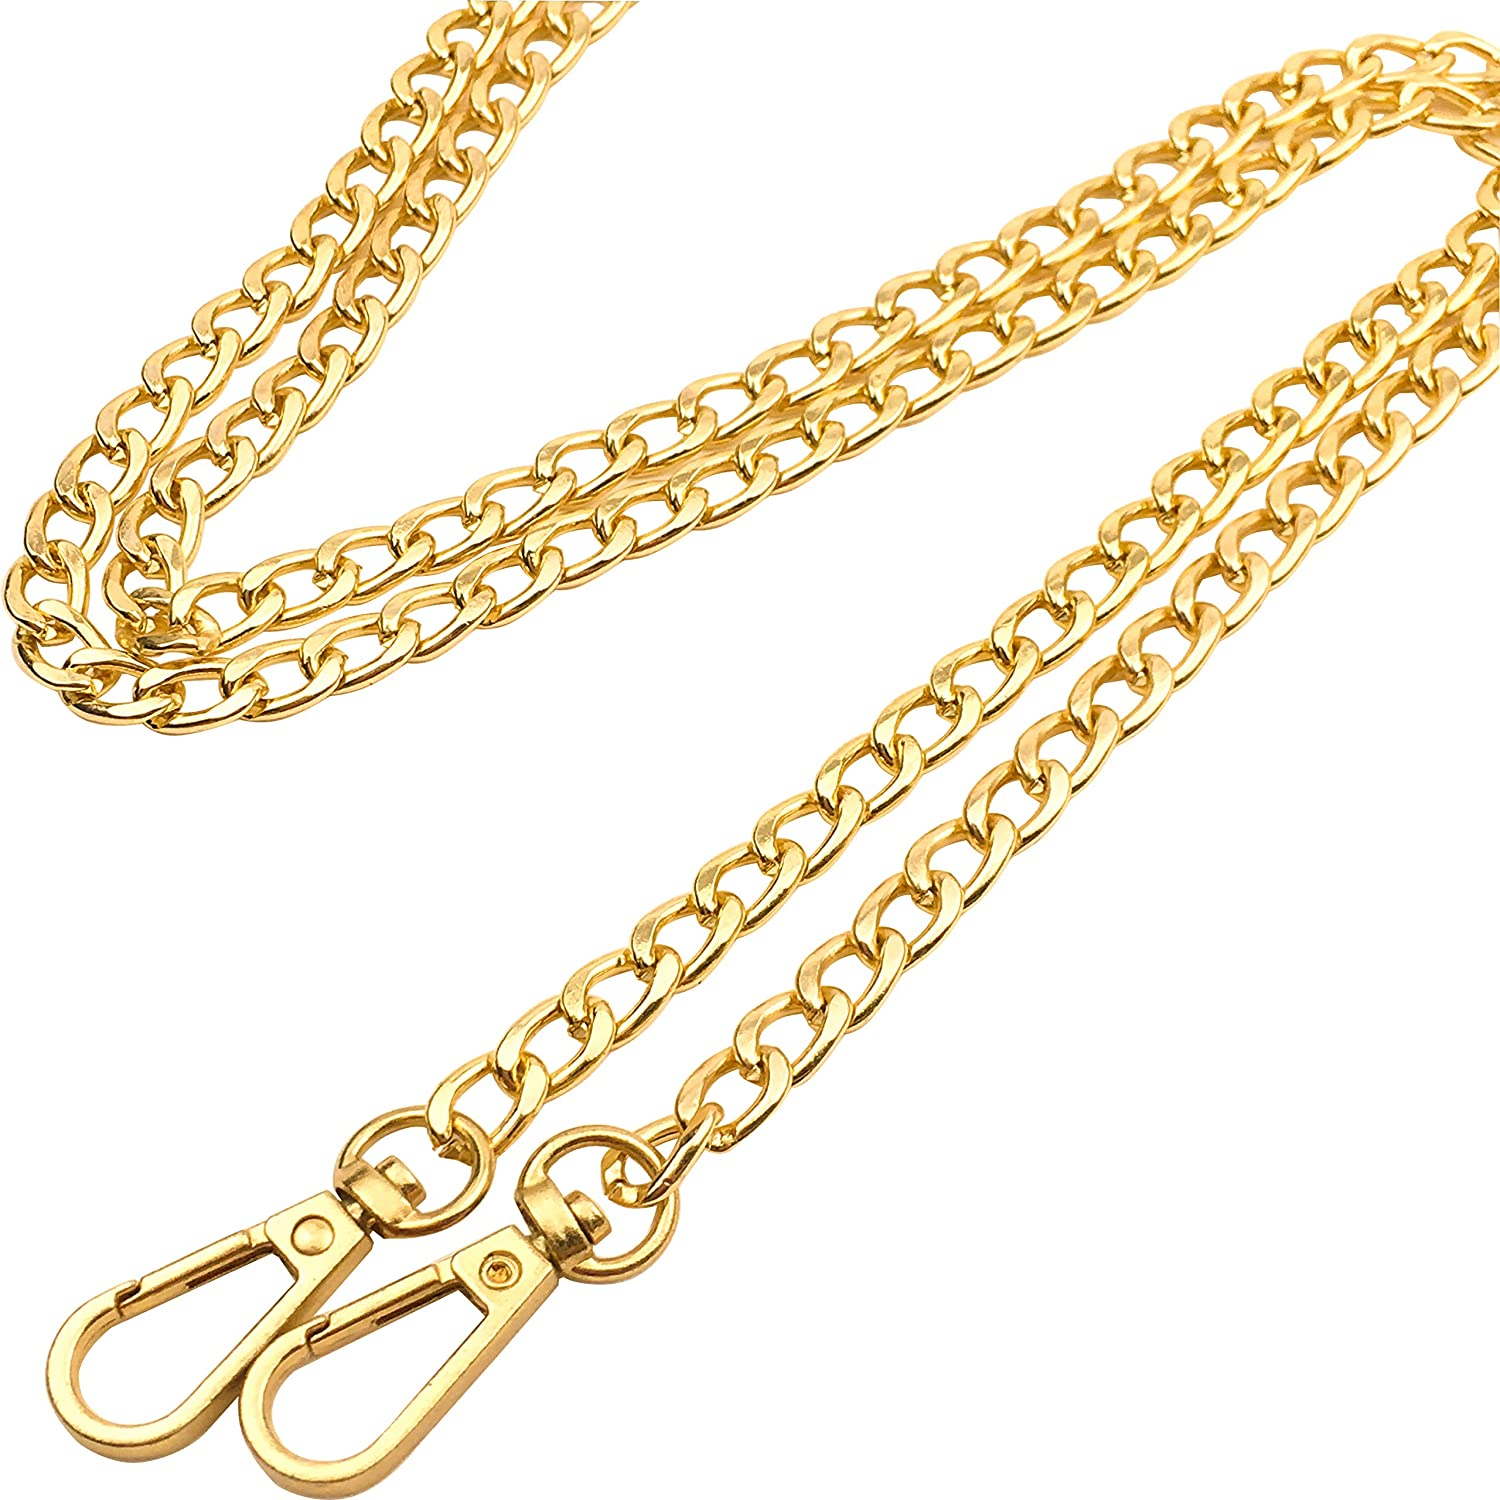 Guo Fa 120CM X 8MM Flat Chain Strap Handbags Replacement Chains for Wallet Clutch Satchel Tote Bag Length Purse Chain Shoulder Crossbody Bags Hardware Chain Gold 4PCS (47 Inch)